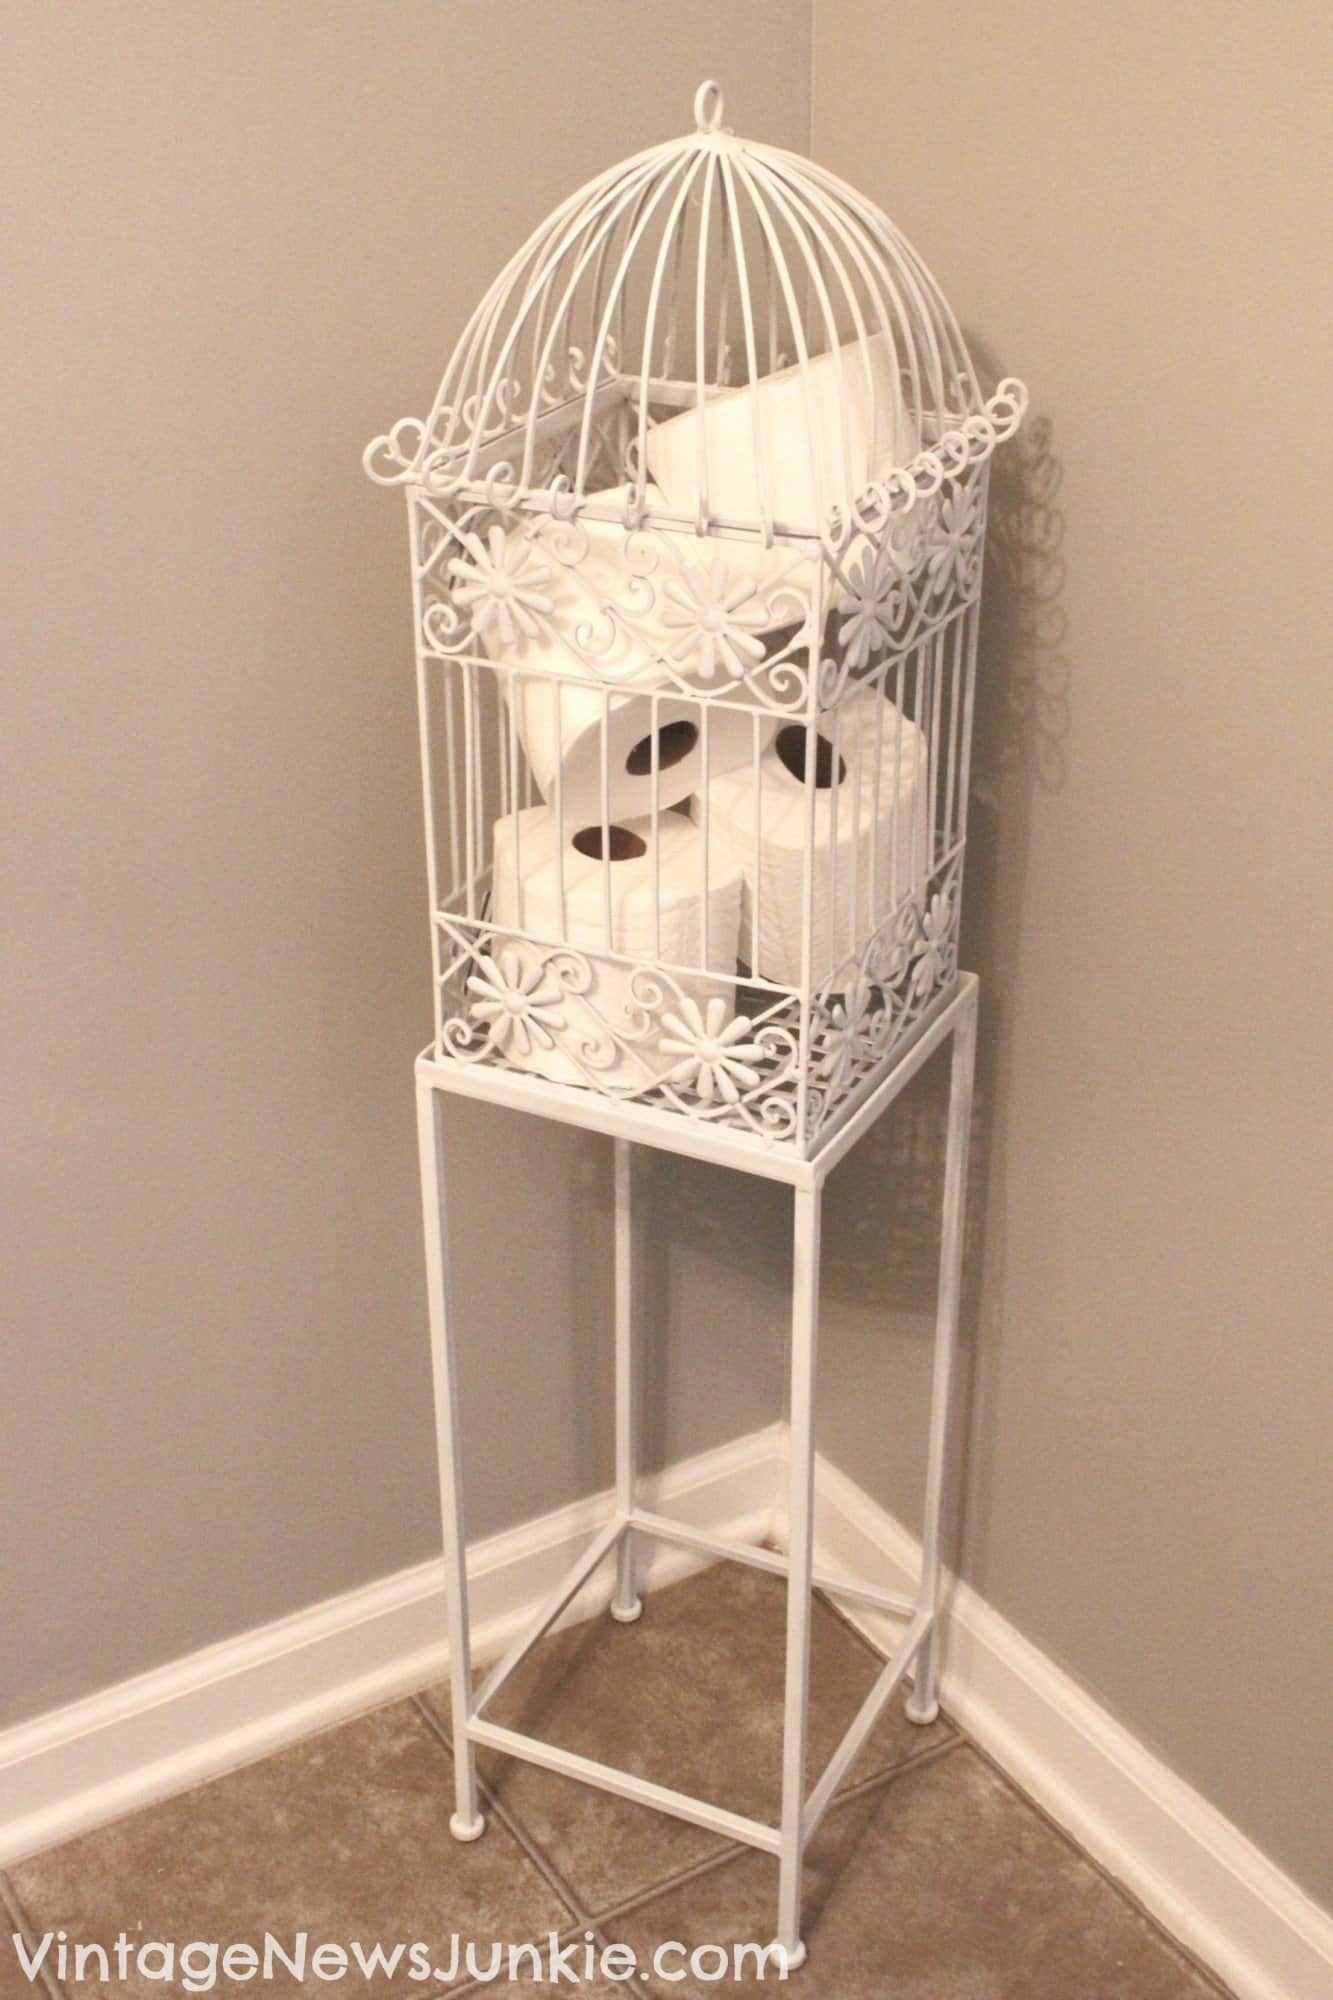 Whimsical bathrooms will need this birdcage!